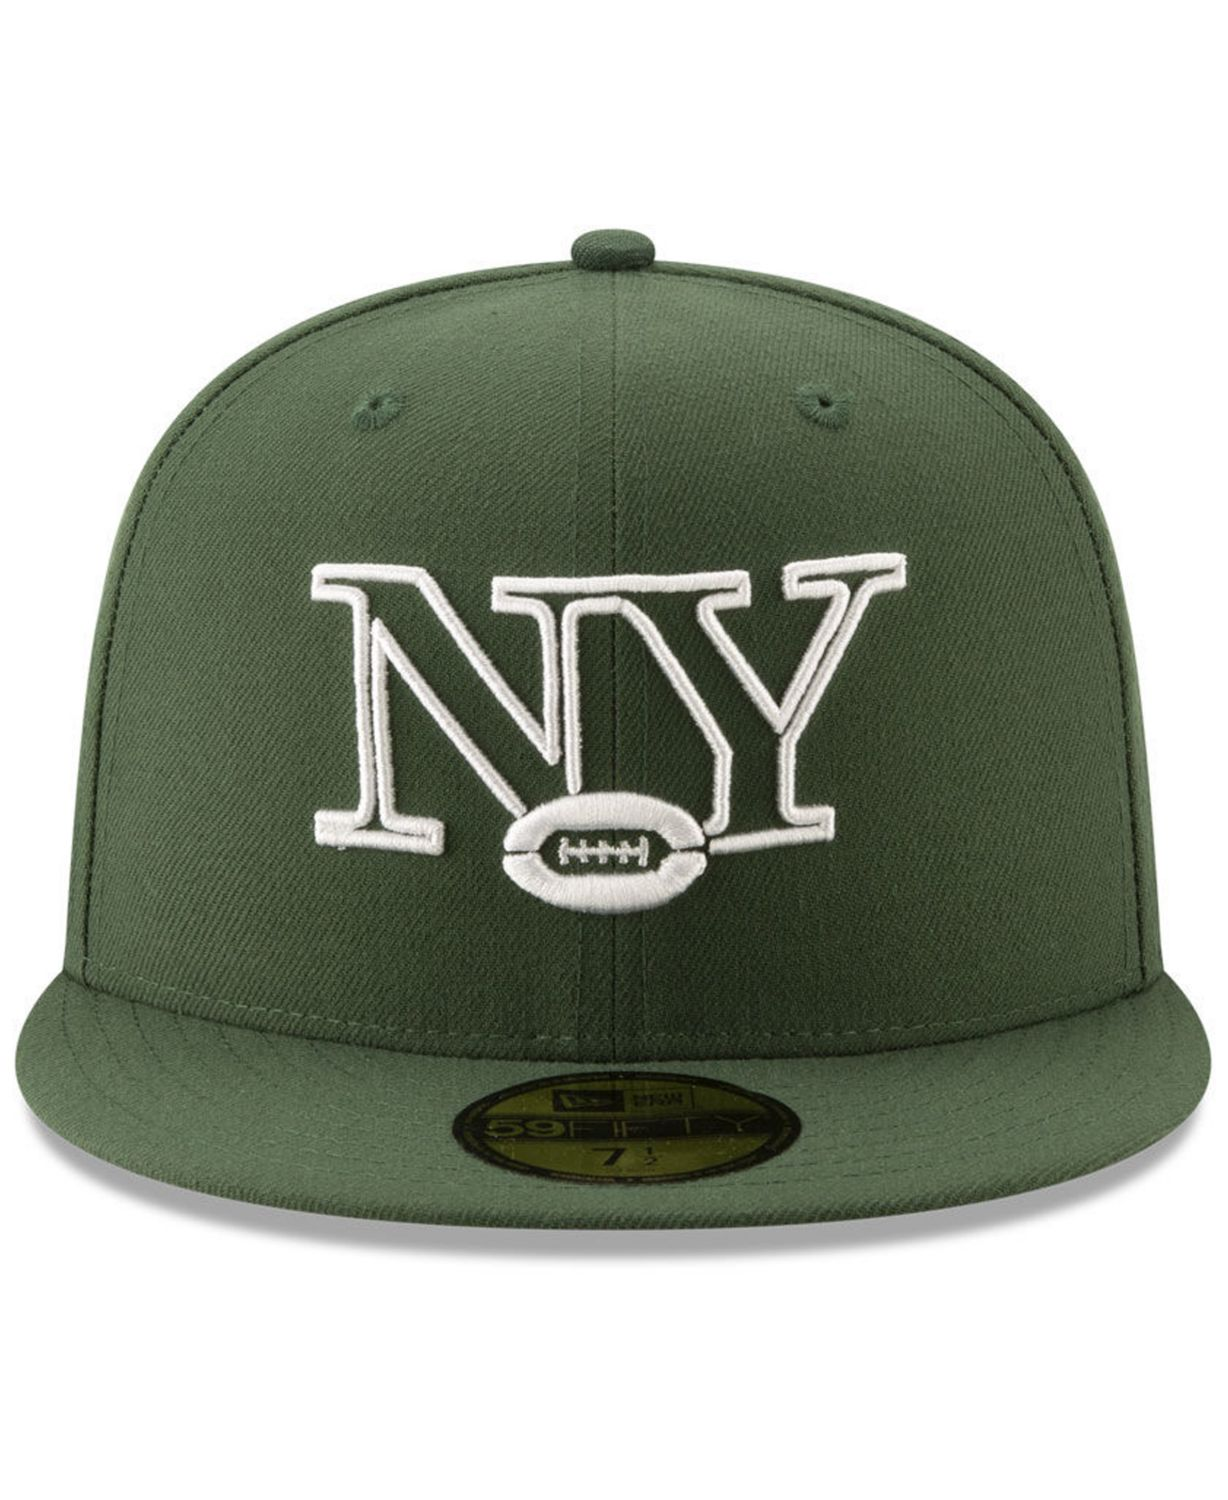 New Era New York Jets Logo Elements Collection 59FIFTY FITTED Cap & Reviews - Sports Fan Shop By Lids - Men - Macy's